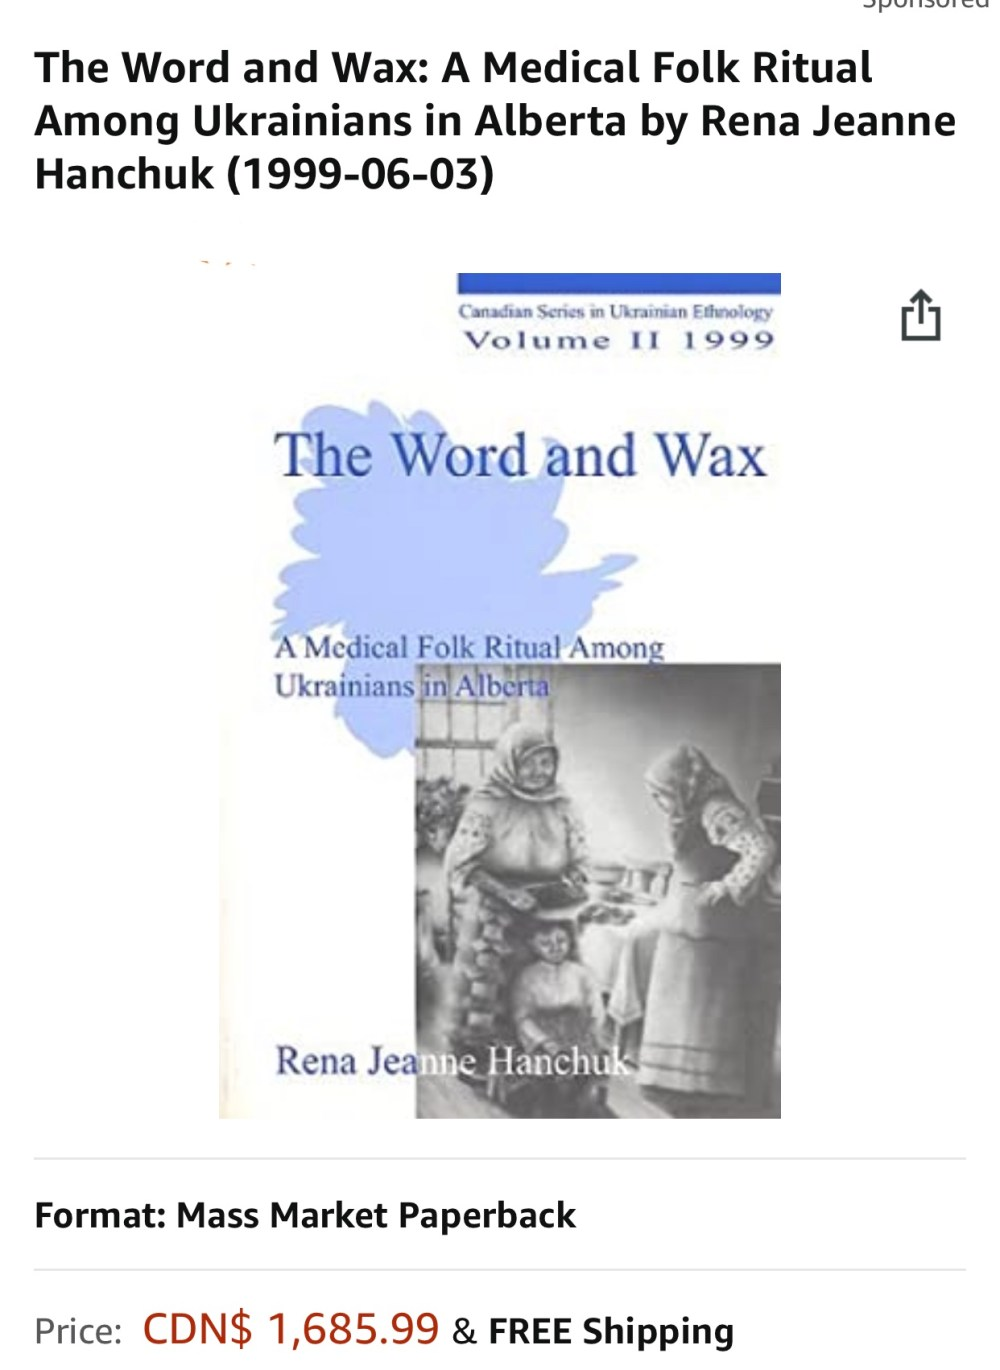 The word and wax